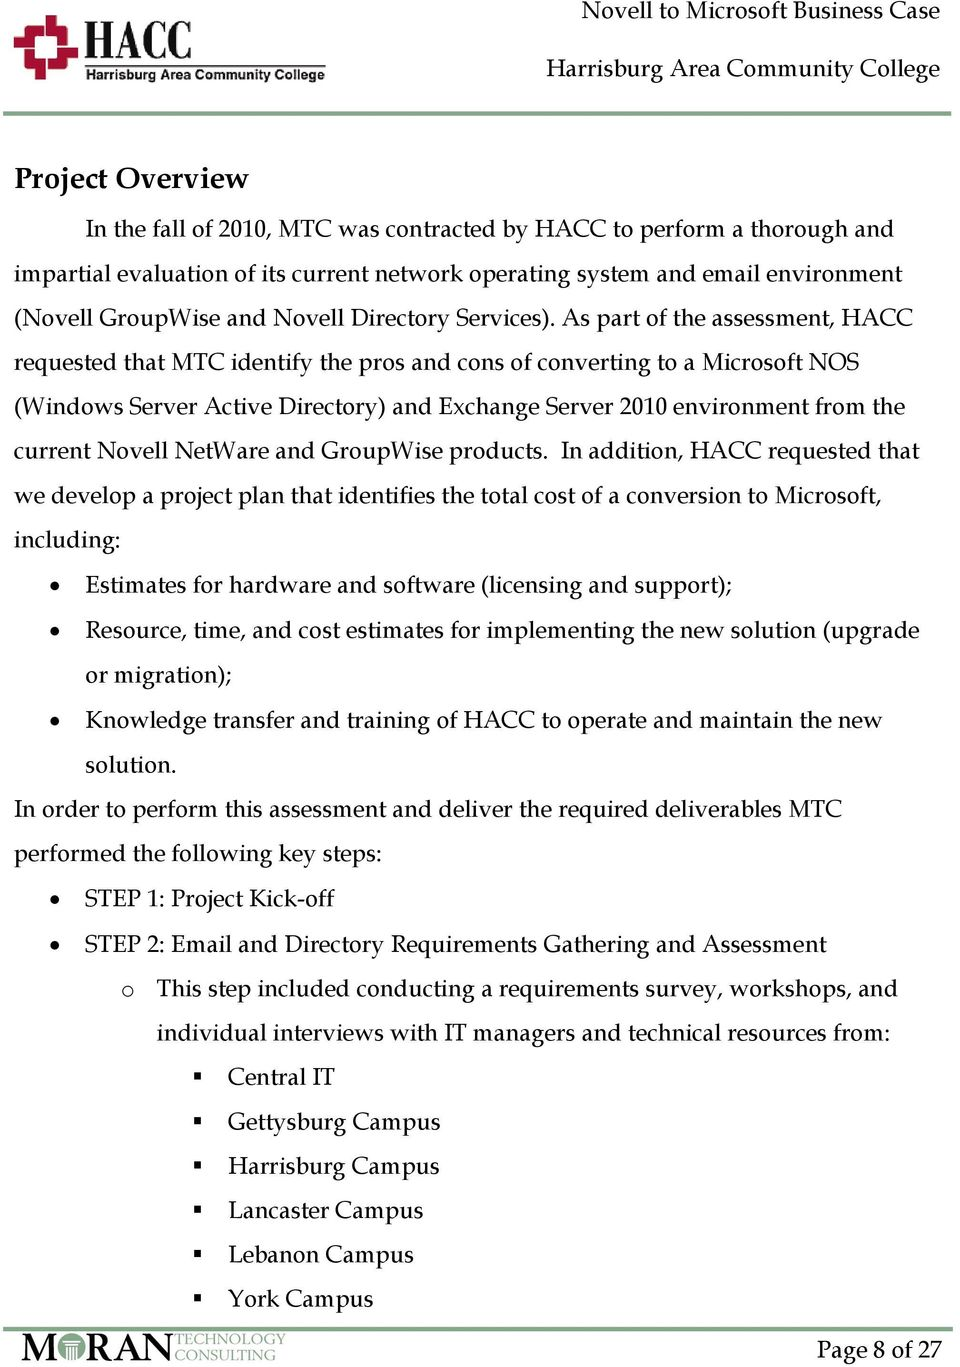 As part of the assessment, HACC requested that MTC identify the pros and cons of converting to a Microsoft NOS (Windows Server Active Directory) and Exchange Server 2010 environment from the current